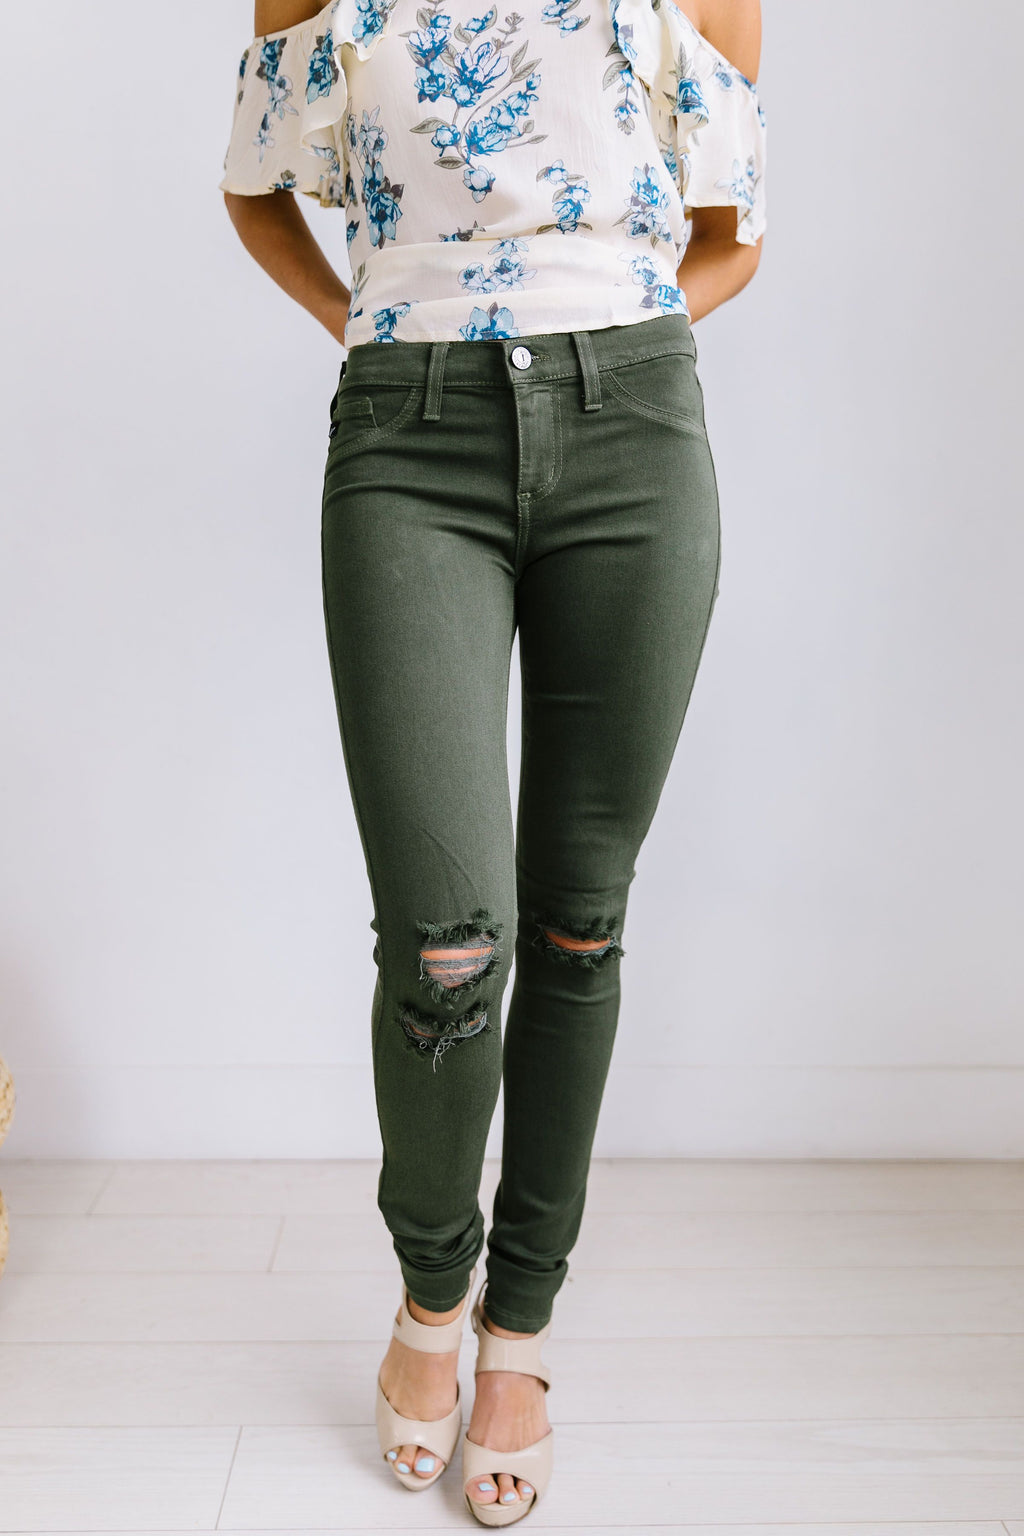 Ripped Knee Olive Skinny Jeans